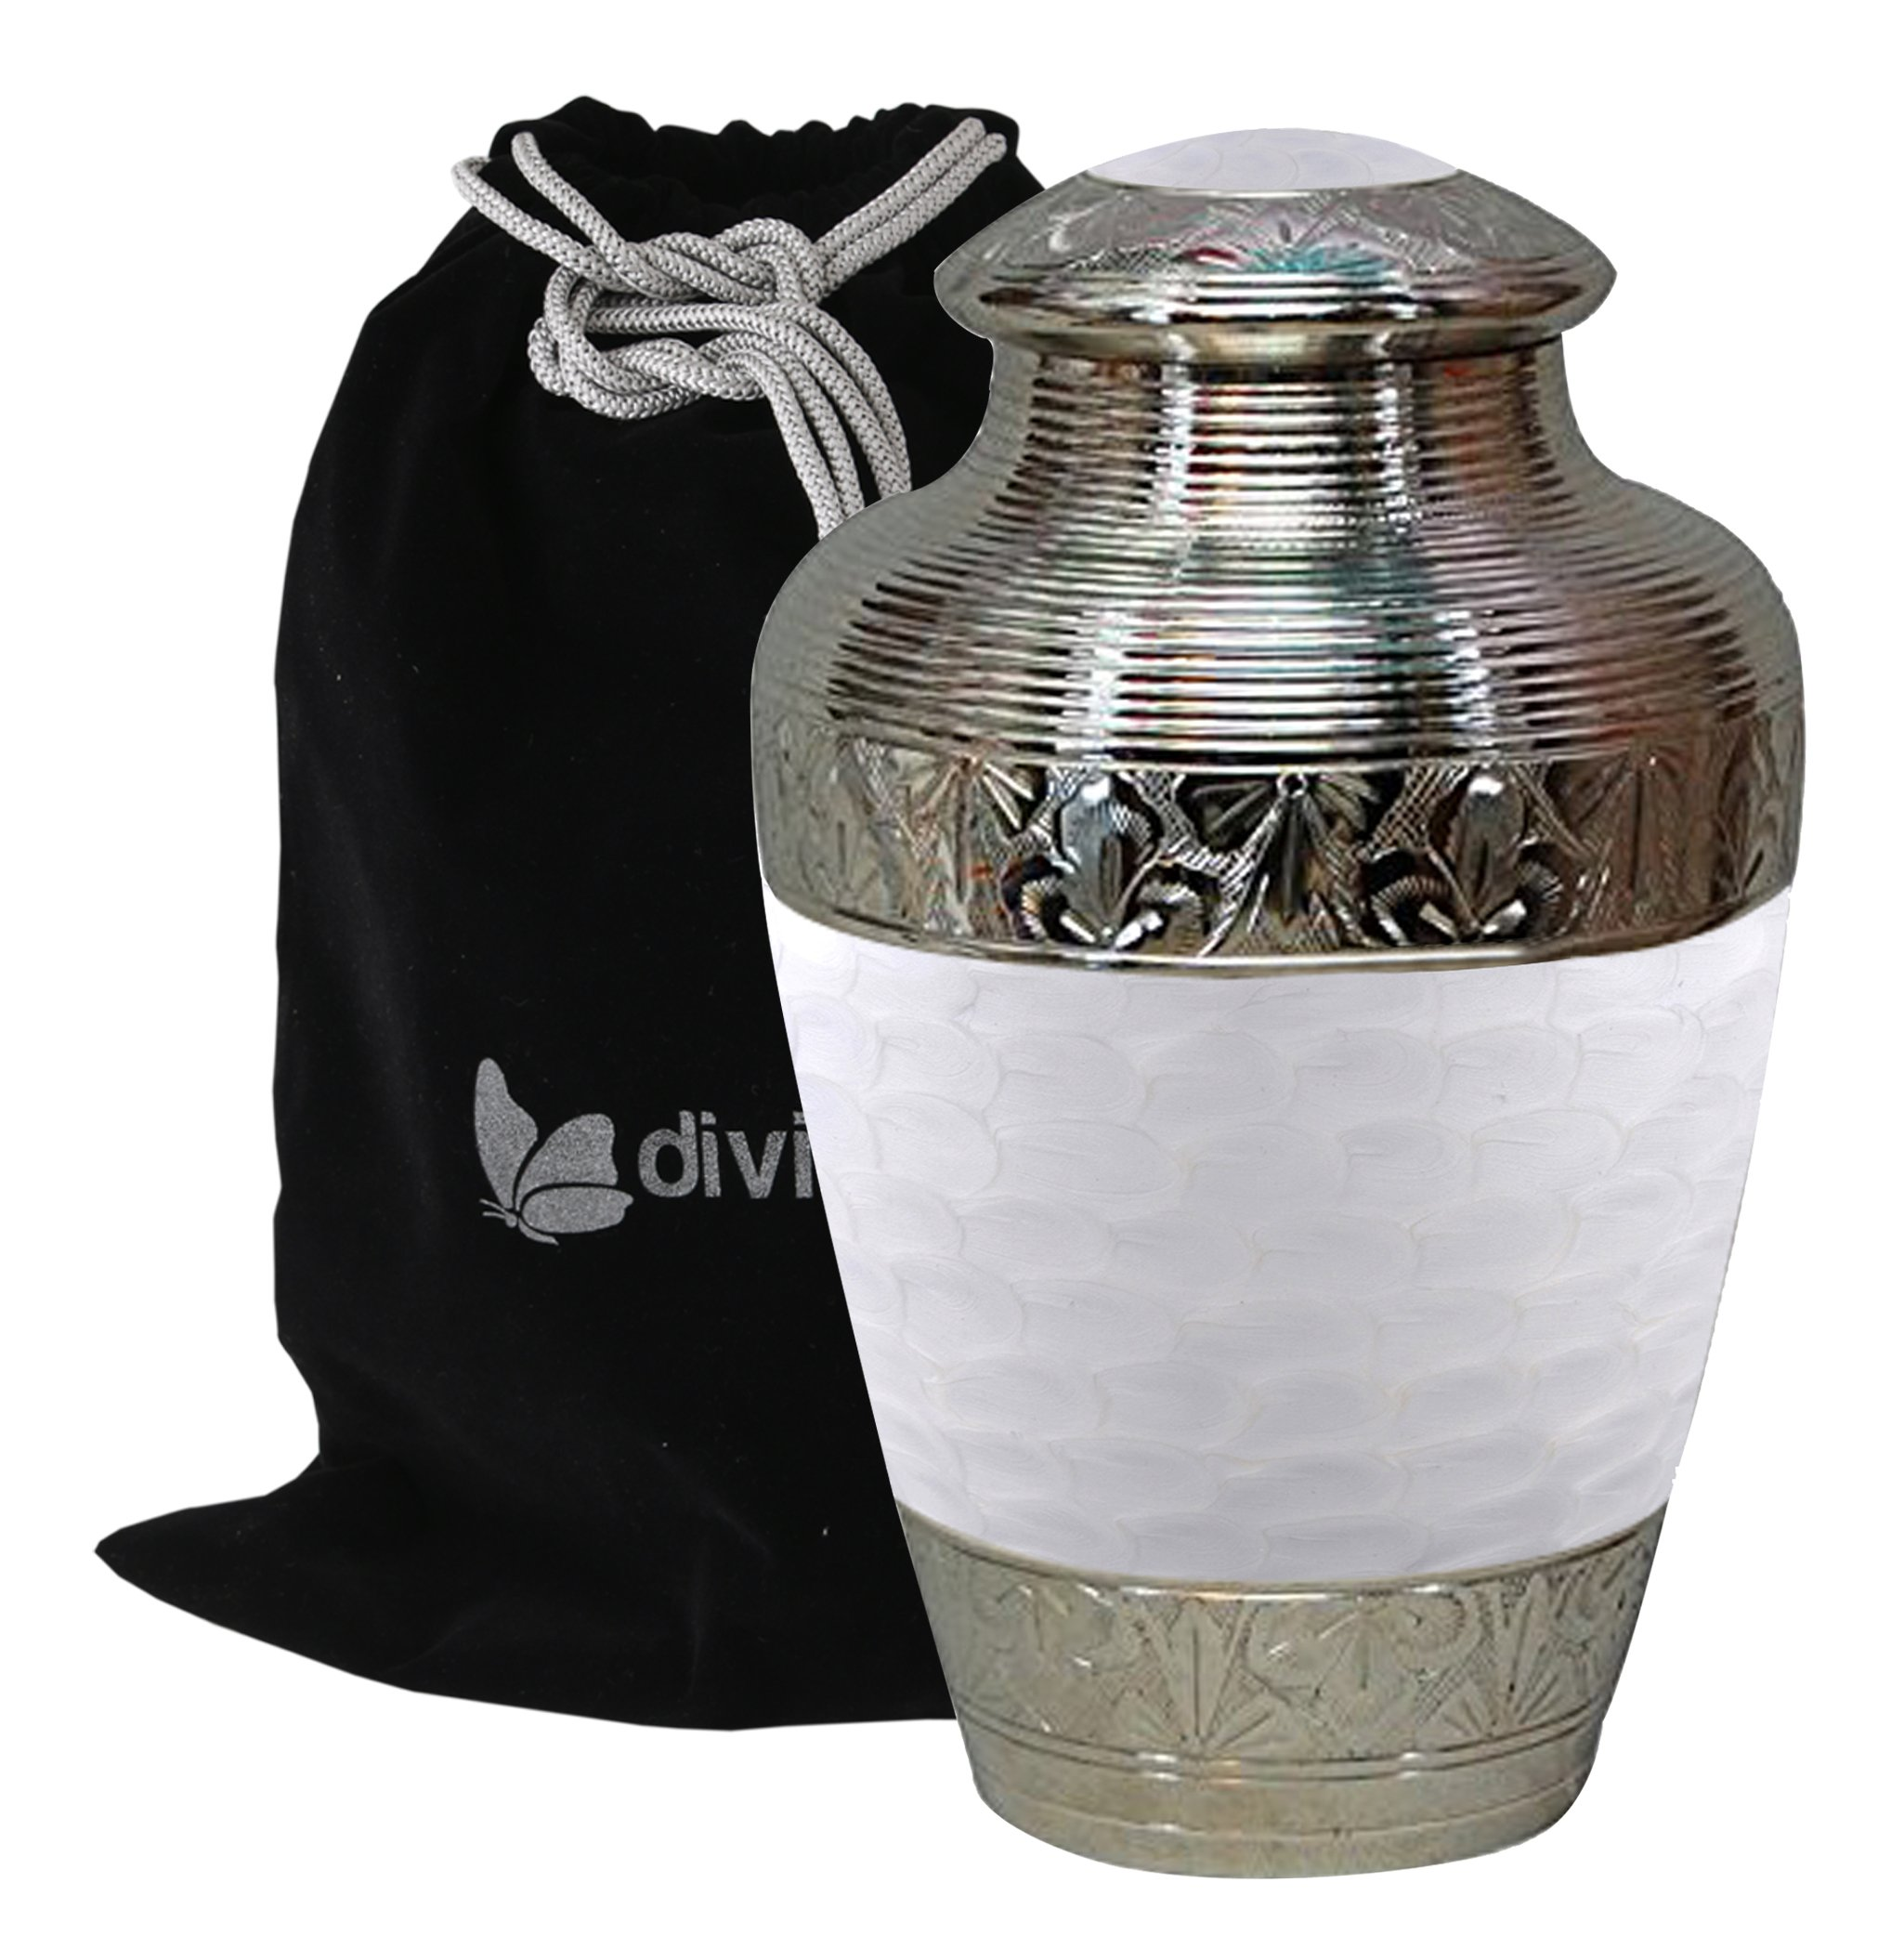 Solid Brass Athens Pearl White Cremation Urn - Adult Pearl White Funeral Urn Handcrafted - Affordable Urn for Human Ashes - Large Urn Deal by Divinityurns (Image #1)